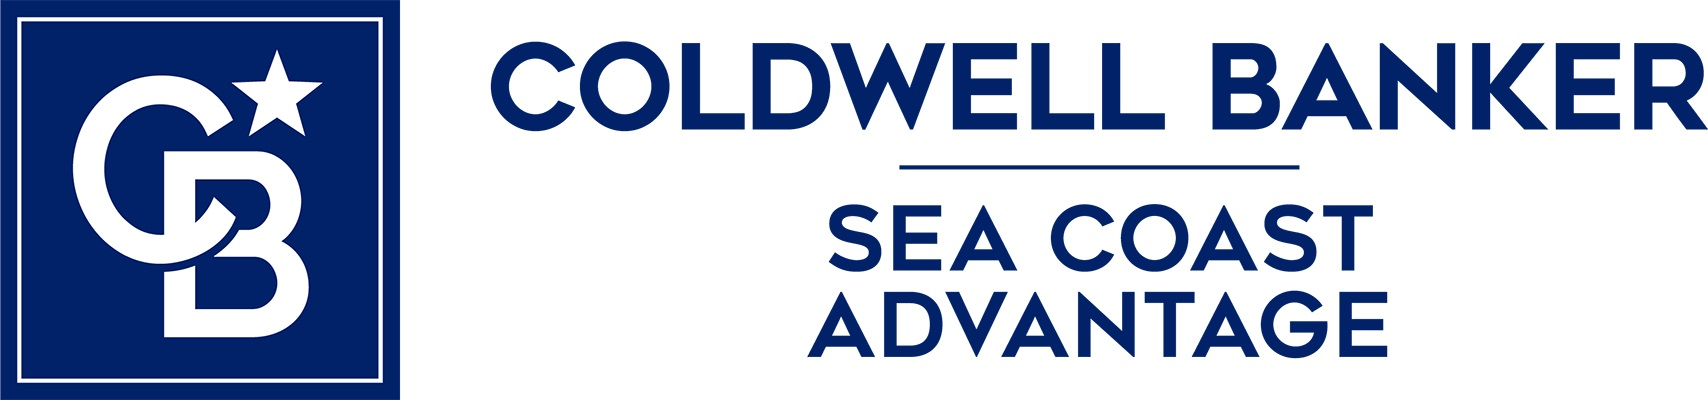 Lori Smith Homes - Coldwell Banker Sea Coast Advantage Logo